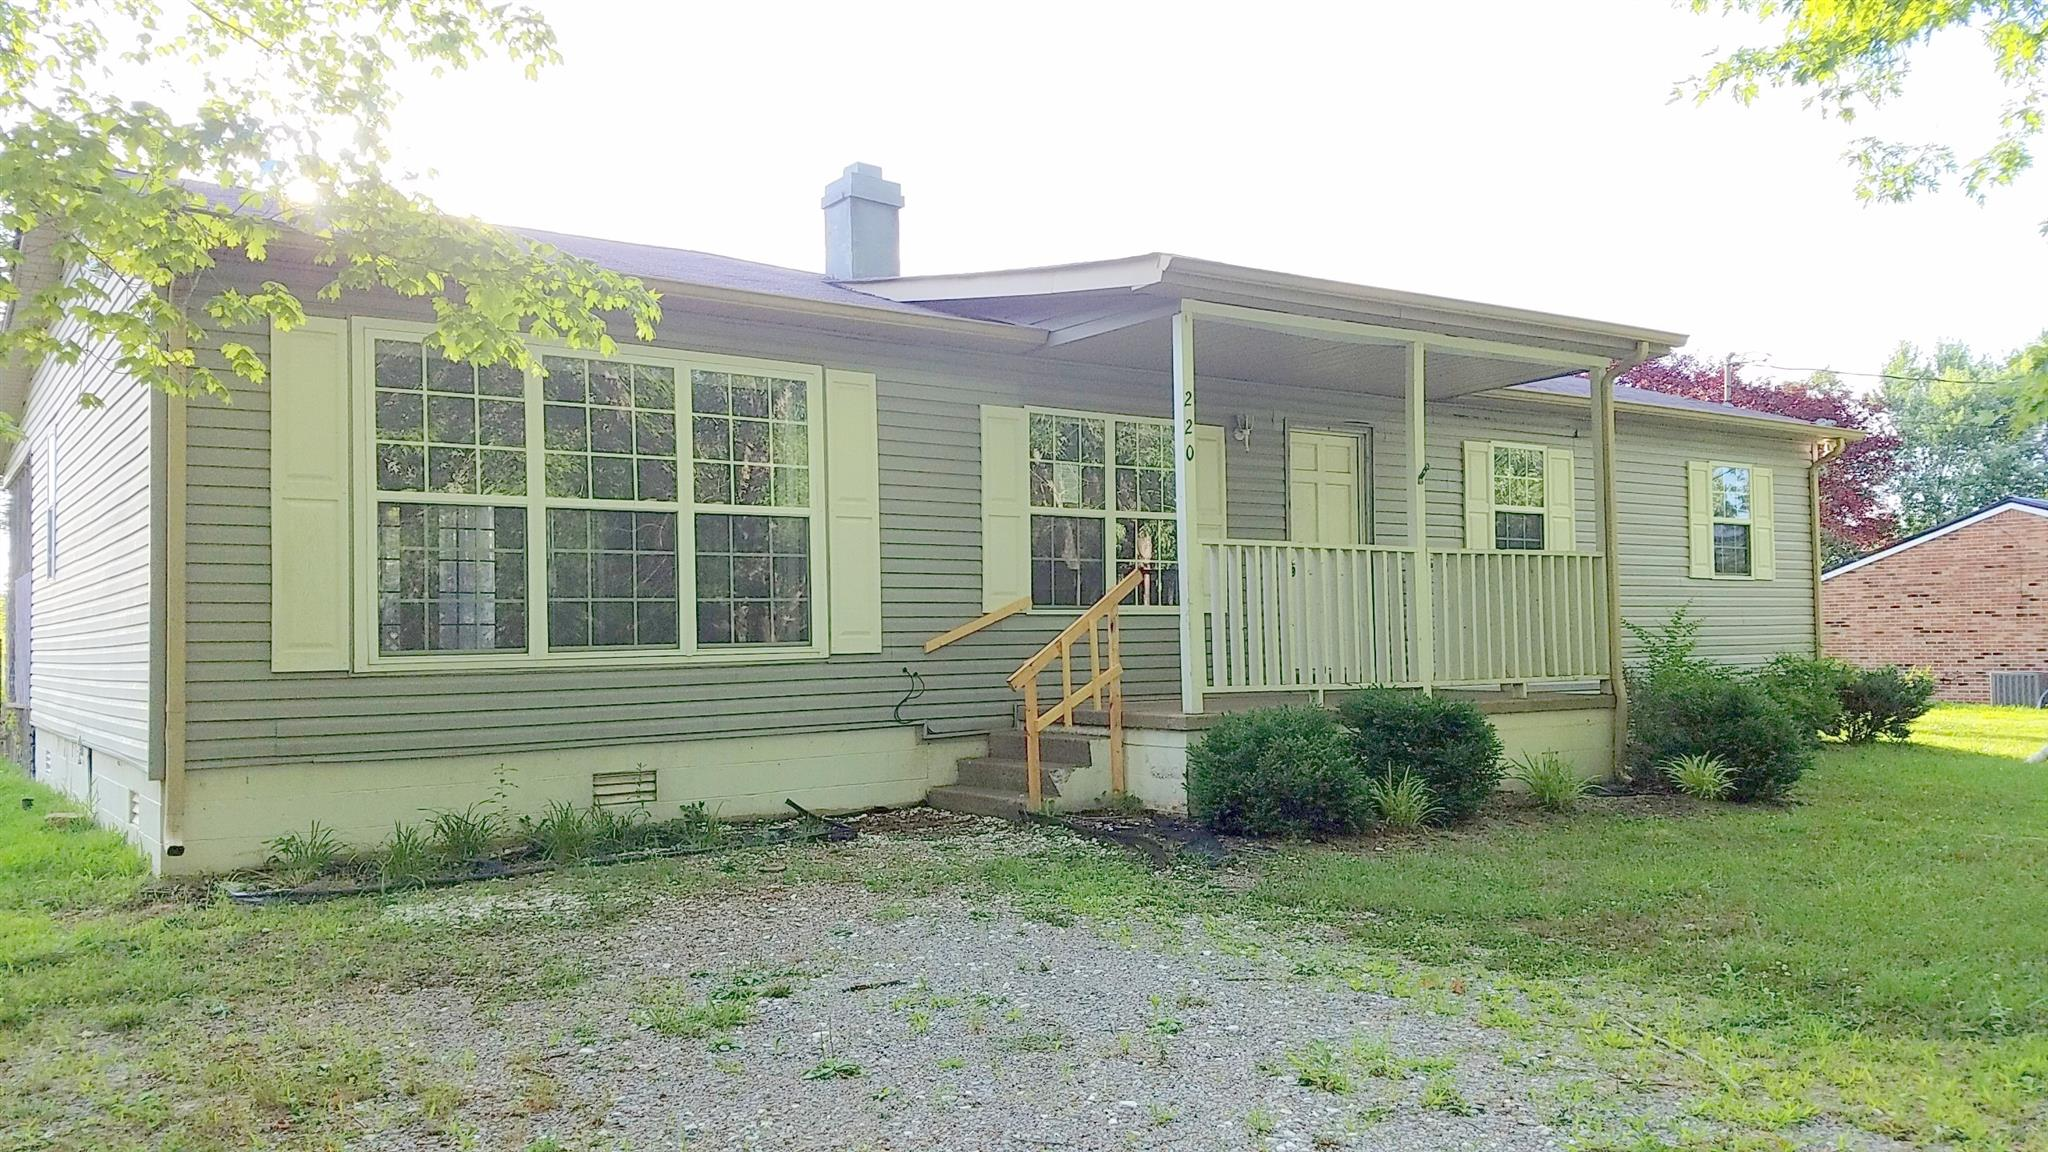 220 Totty Dr, Hohenwald, TN 38462